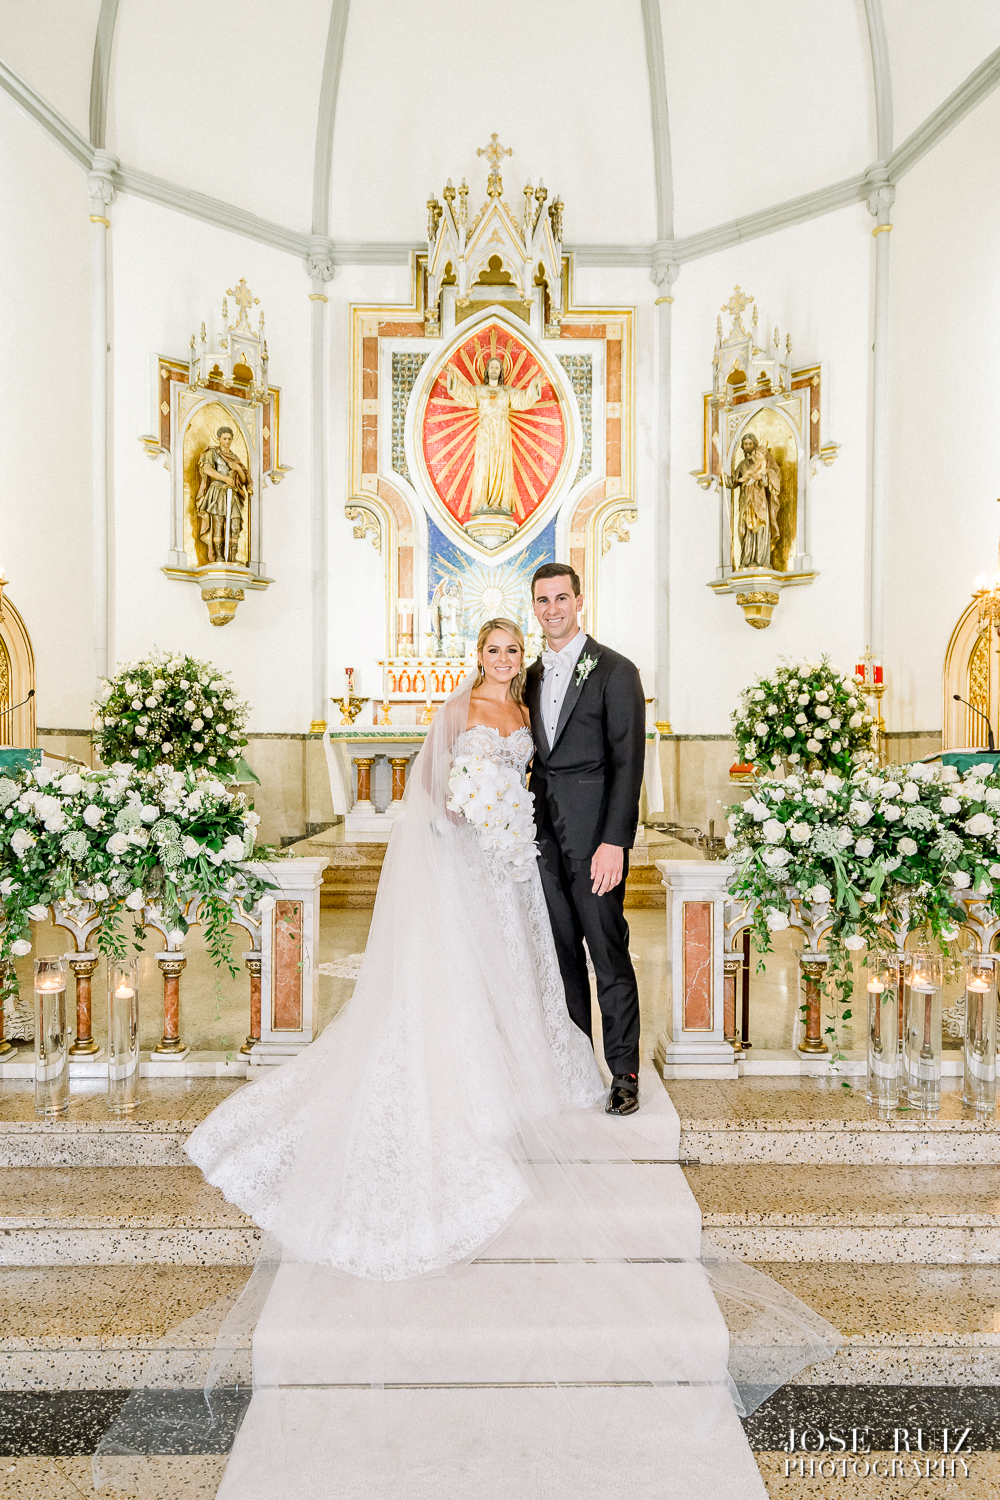 Jose Ruiz Photography- Carolina & Gabo Wedding Day-0108.jpg